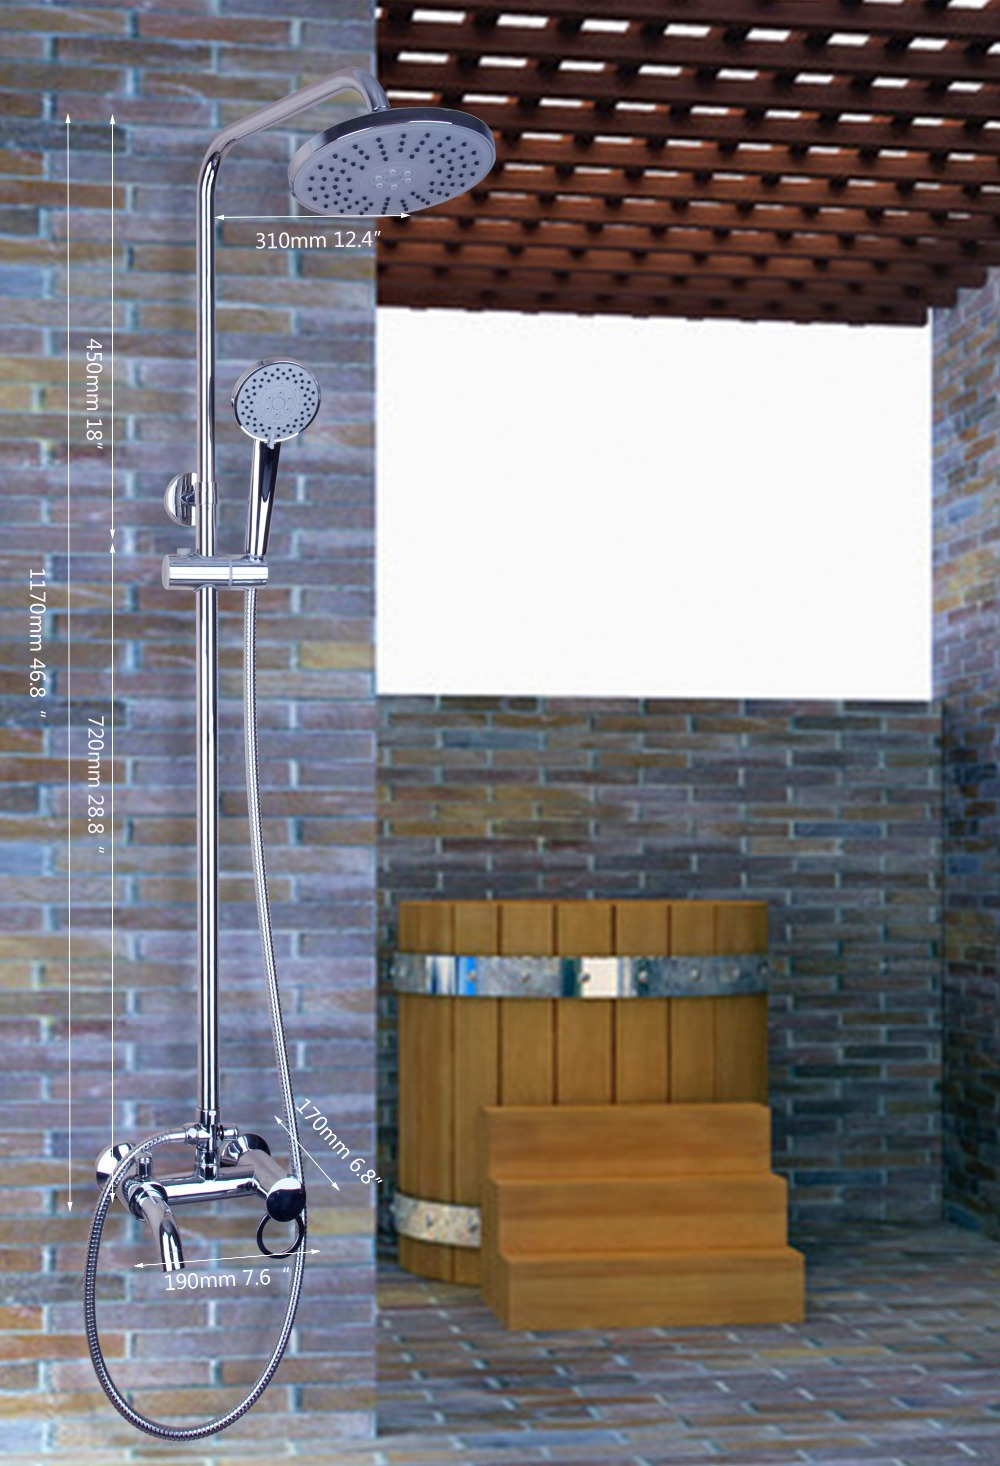 Astounding Rain Shower Head Arm And Hose Set Images - Interior ...